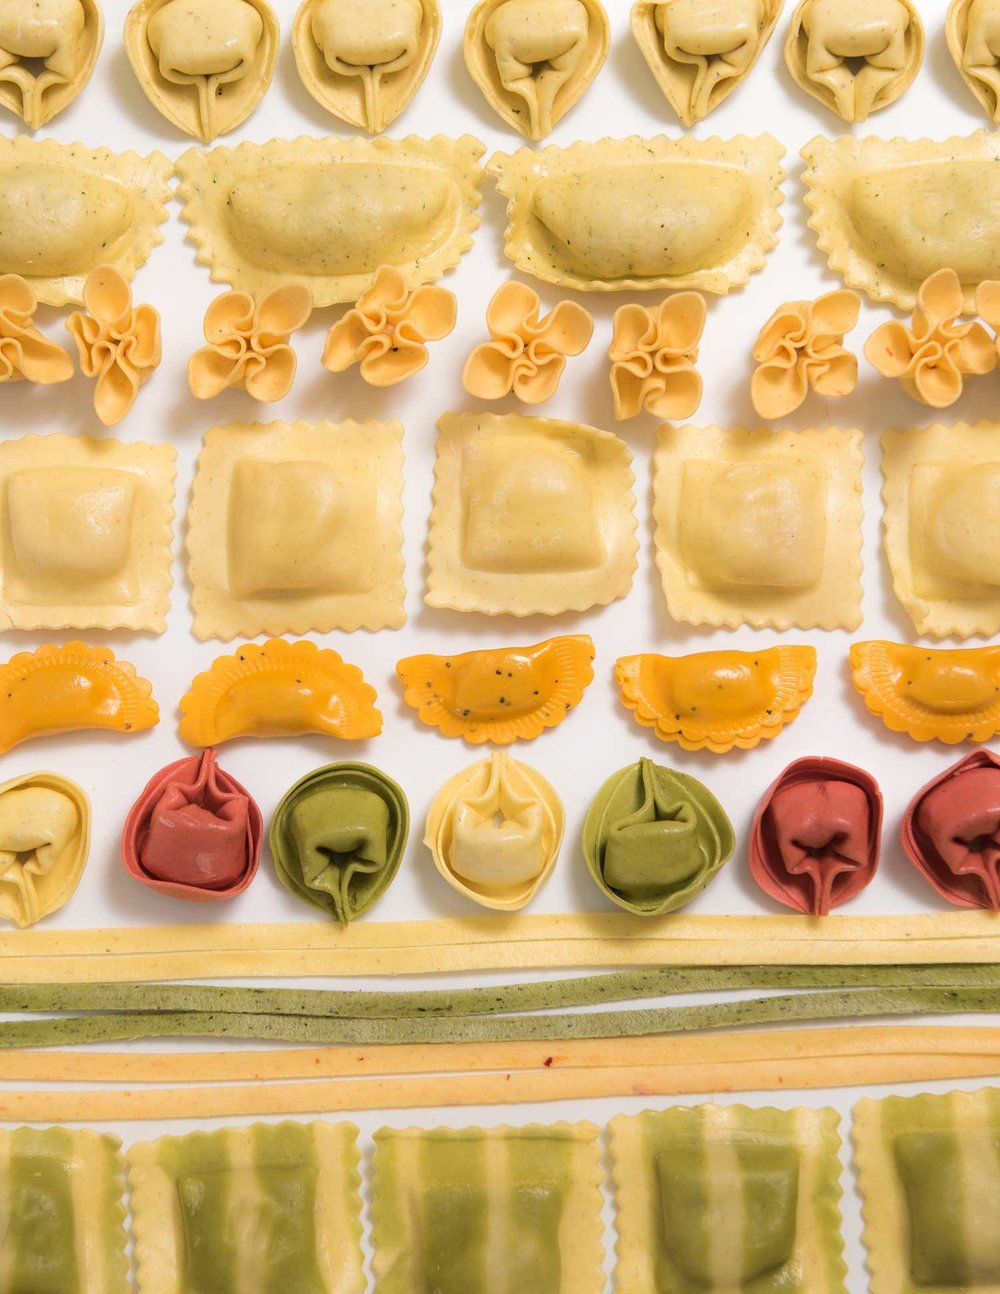 Experience Duso's Pasta and Sauces -